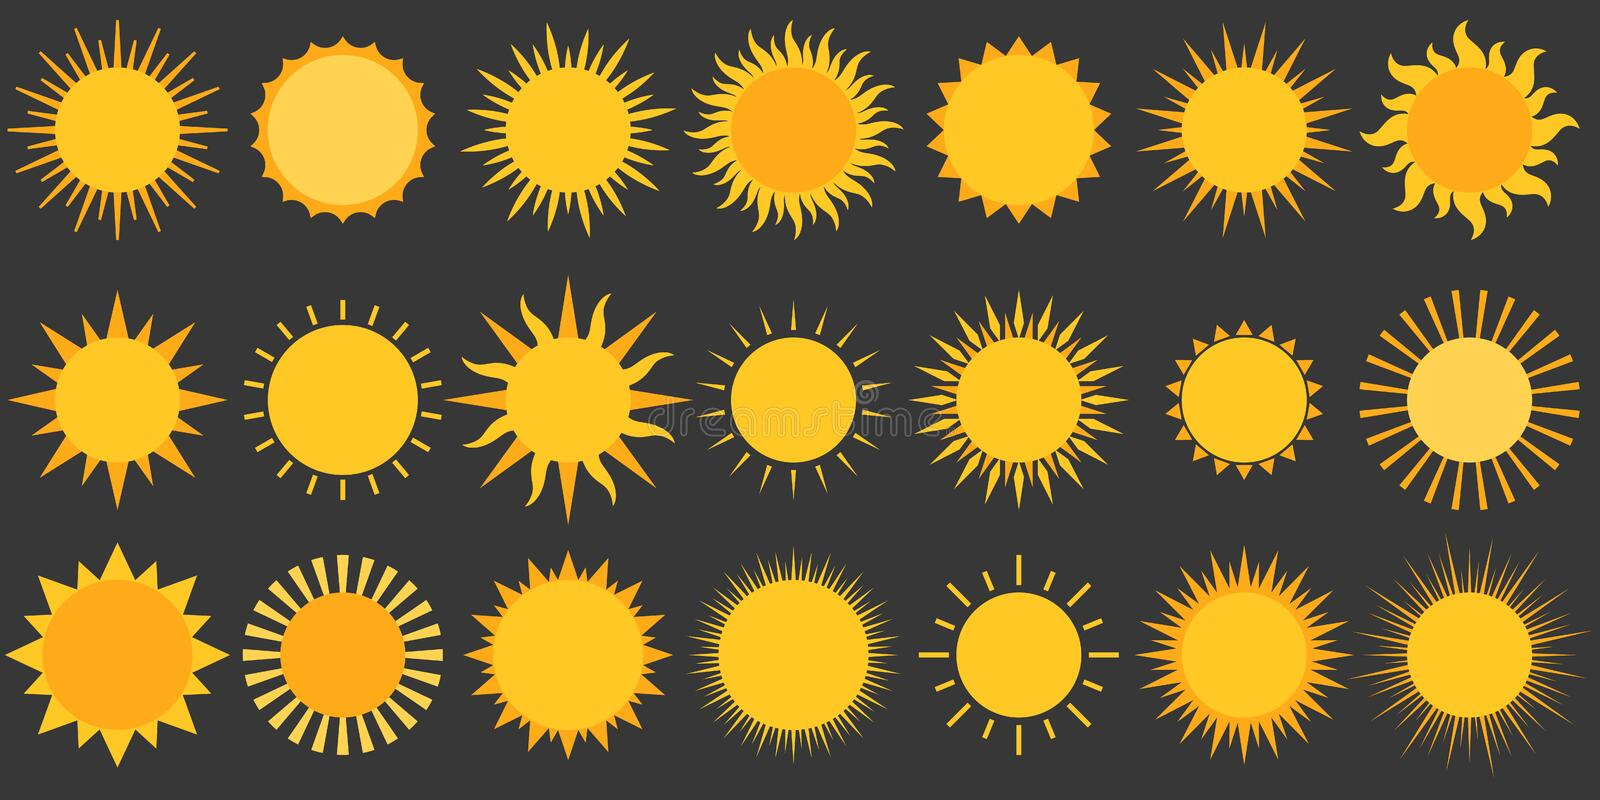 Sun collection vector icon royalty free illustration